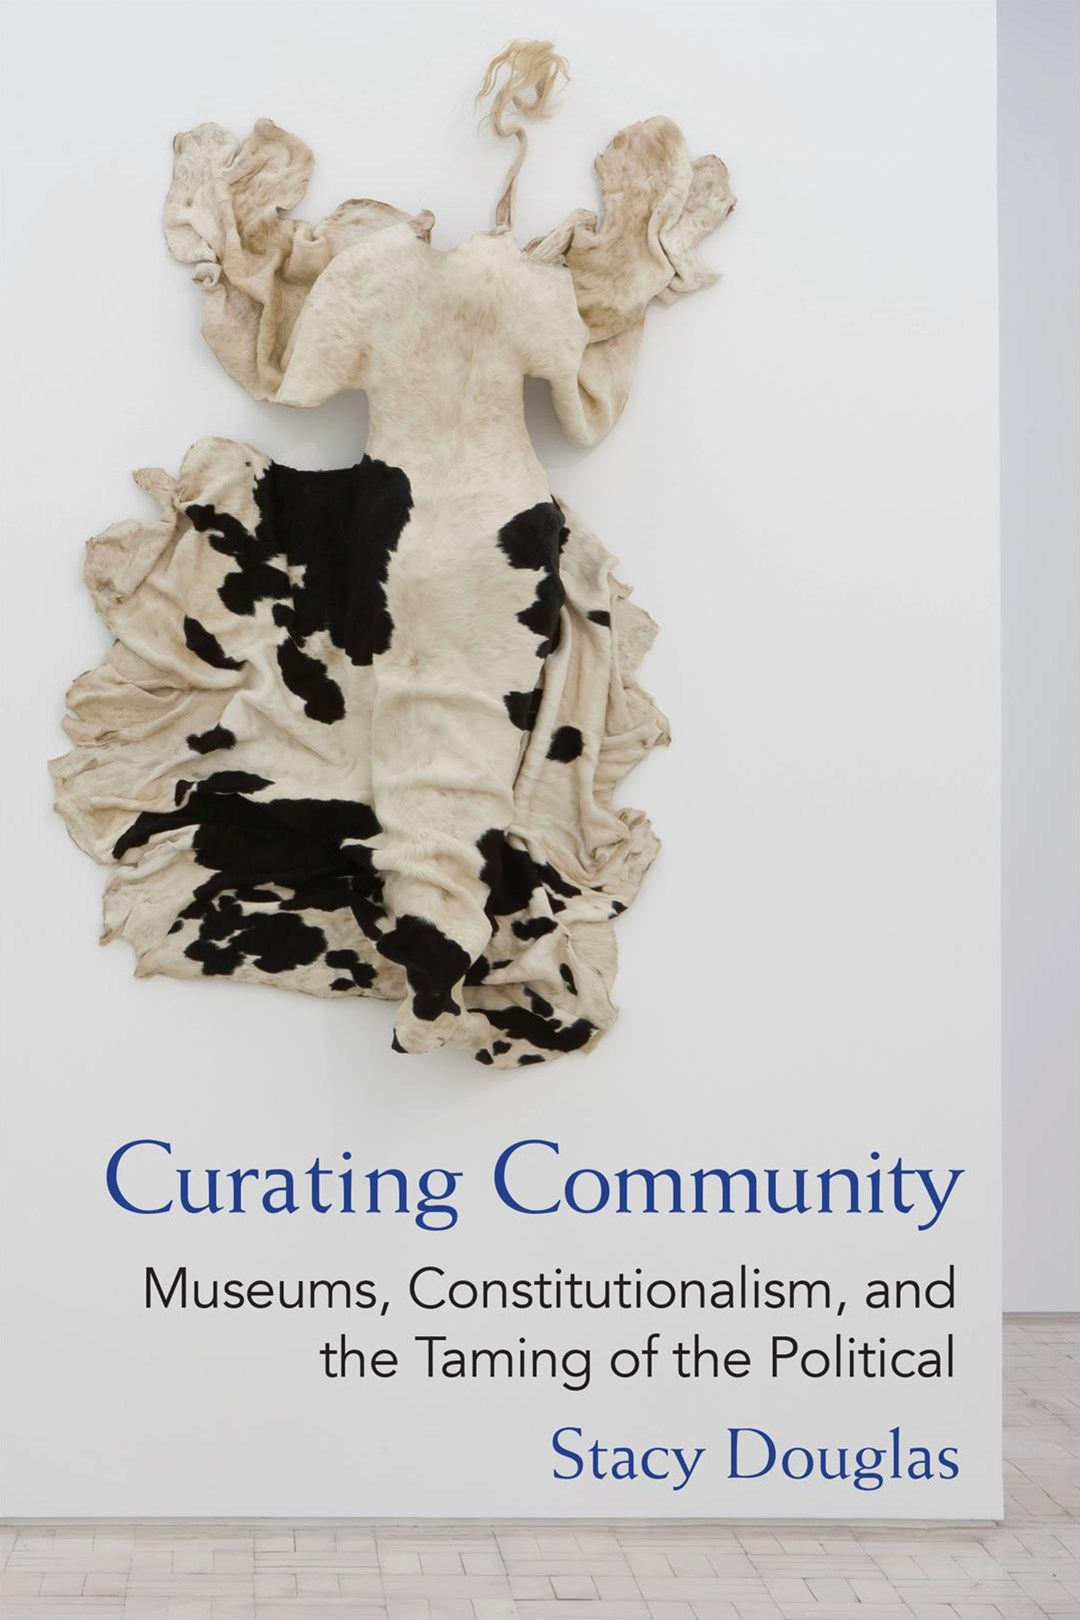 Curating Community